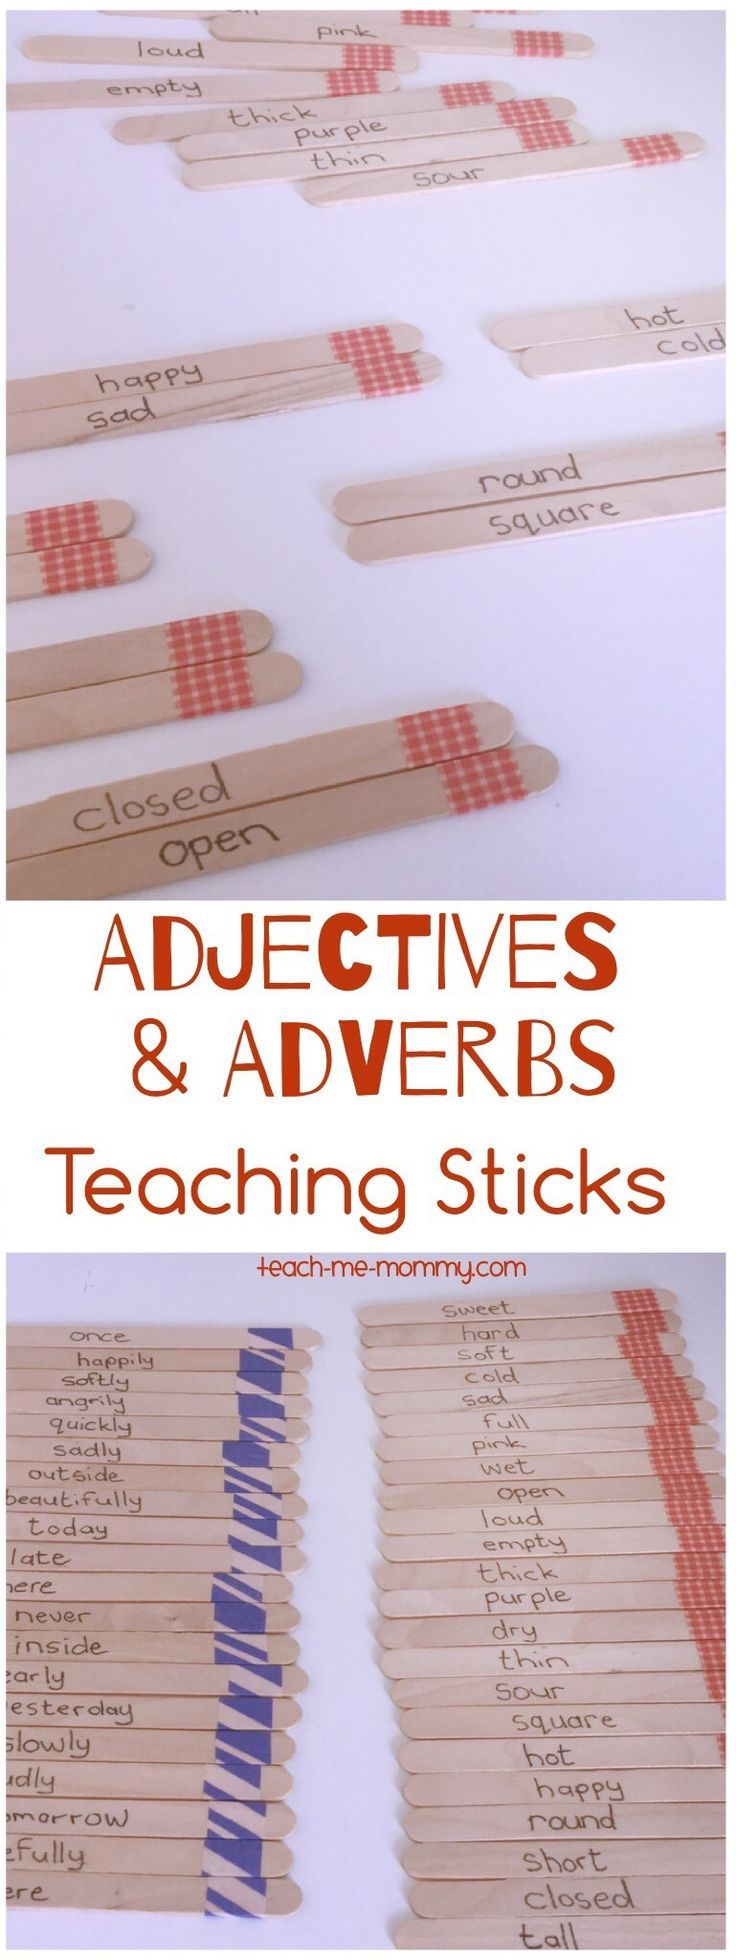 Adjectives & Adverbs Sticks Early Literacy Adverbs